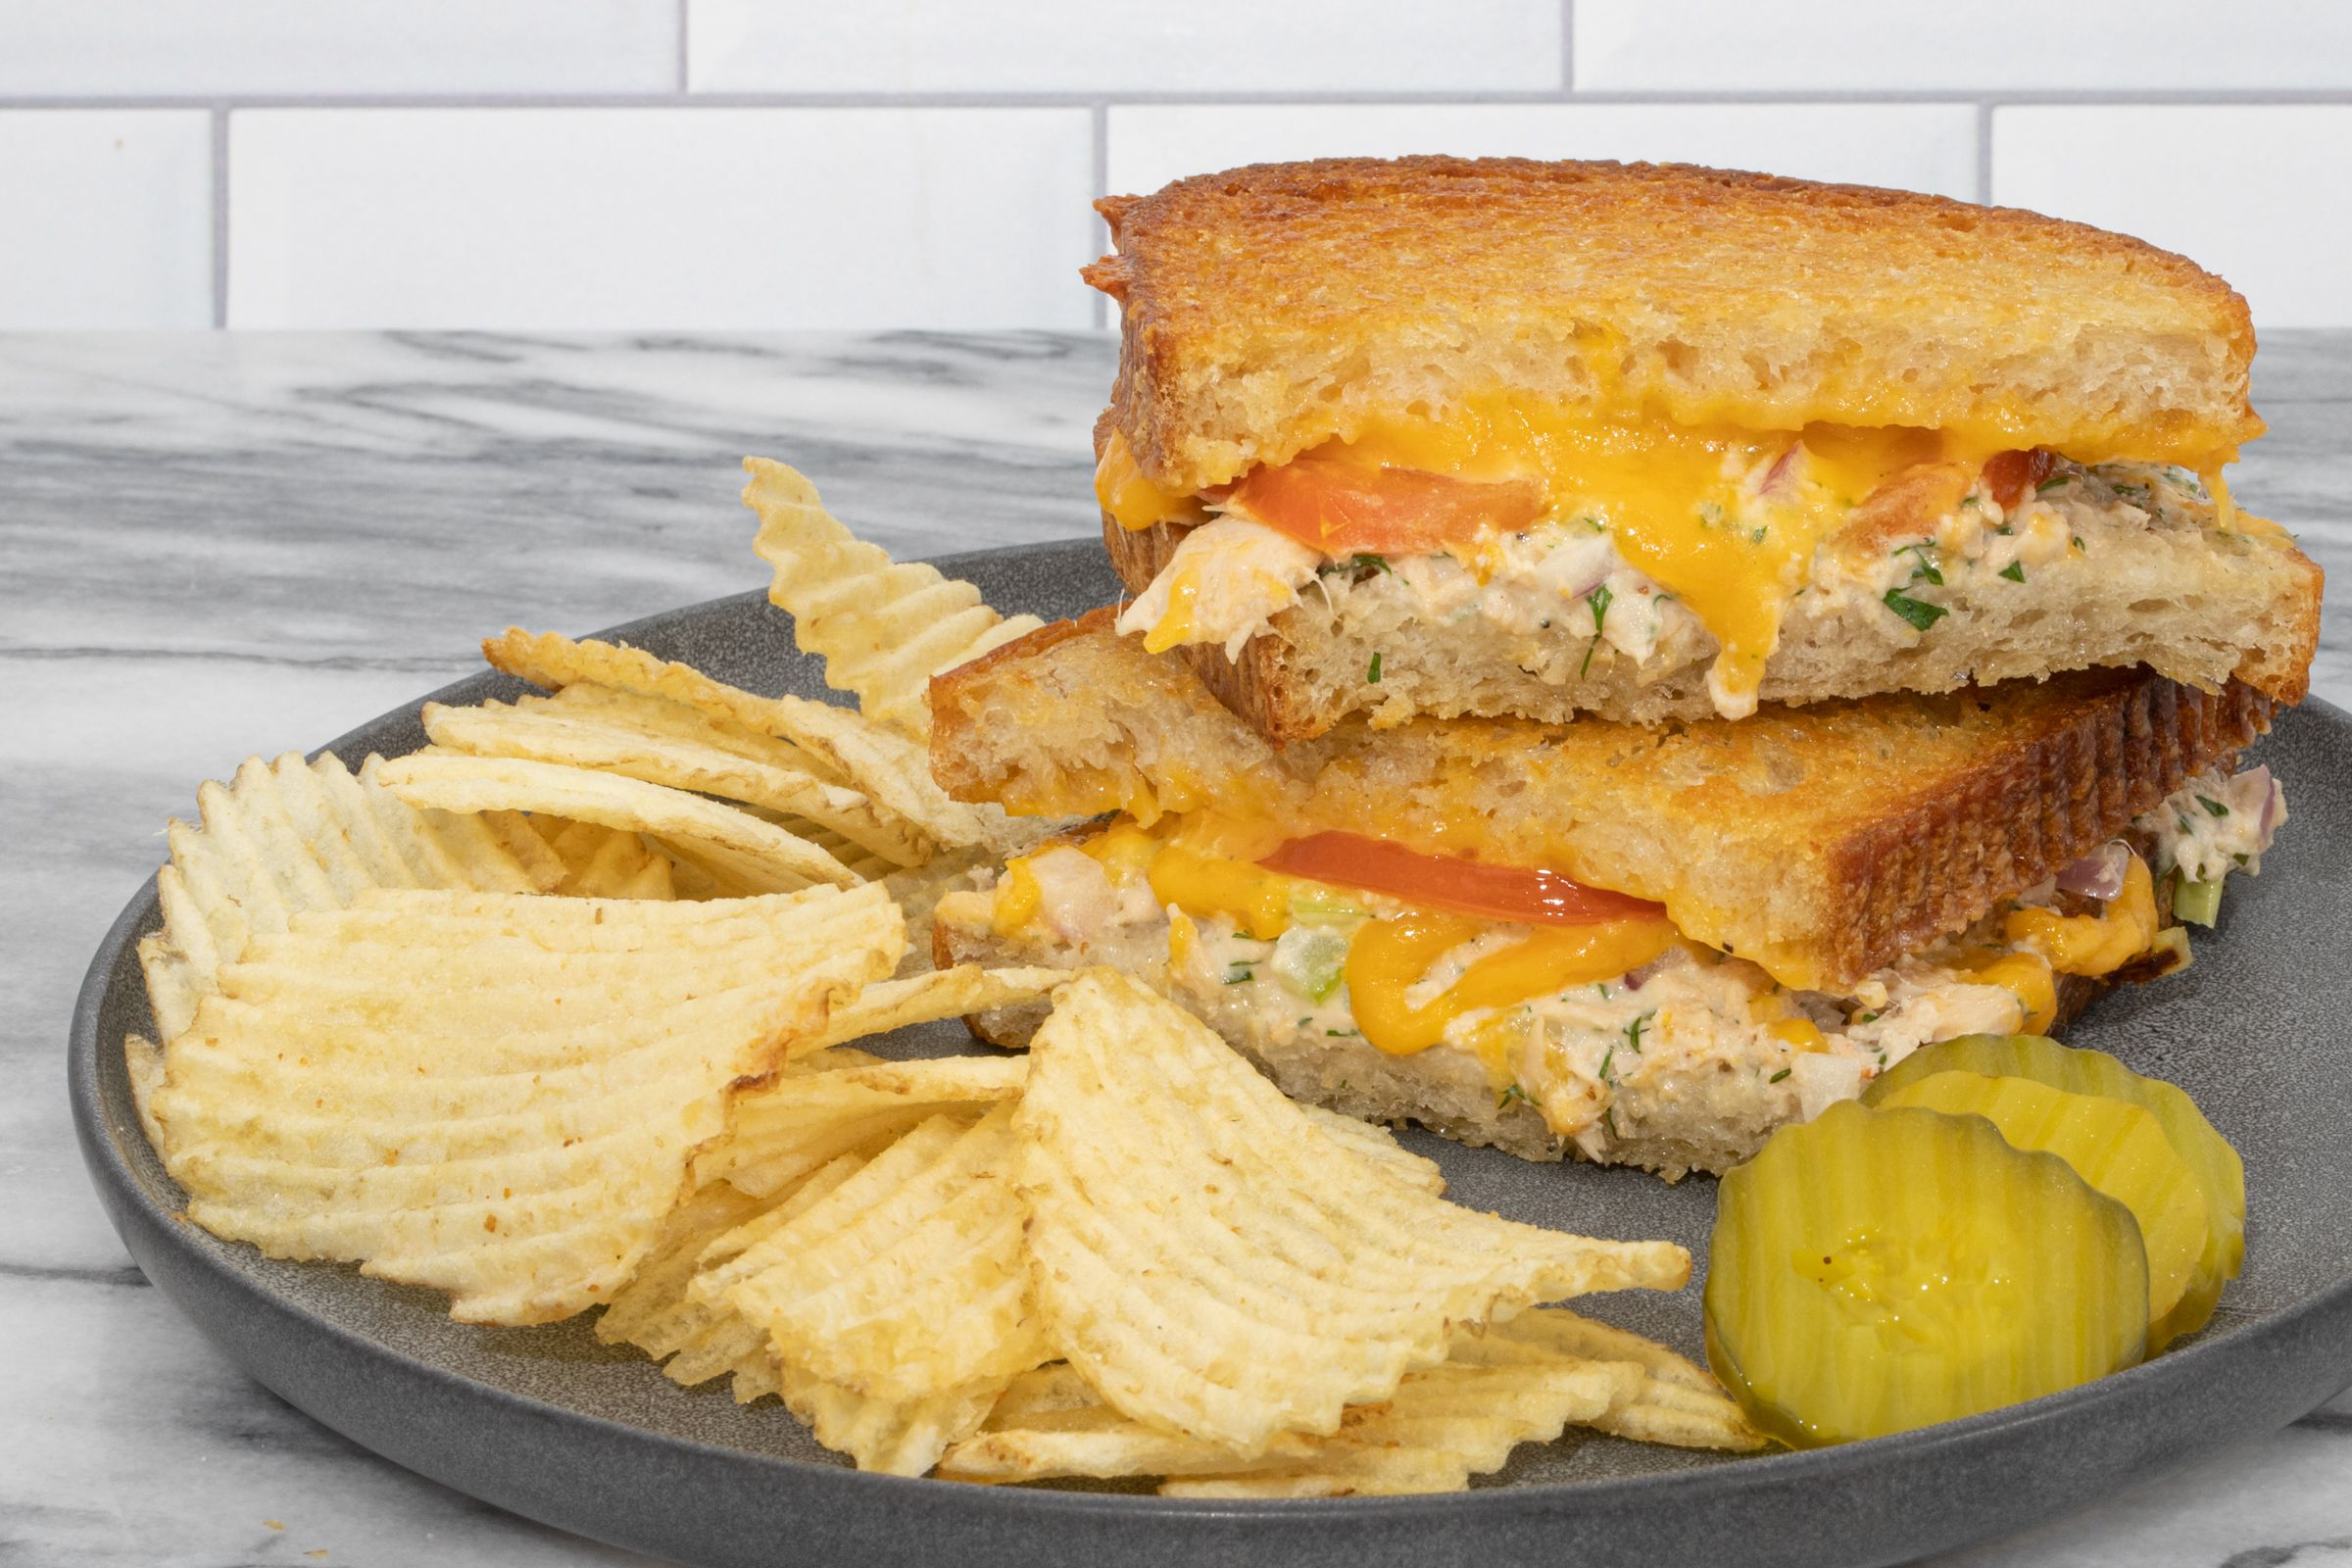 Come Lunch or Dinner, Tuna Melt Sandwiches Are Always a Great Choice